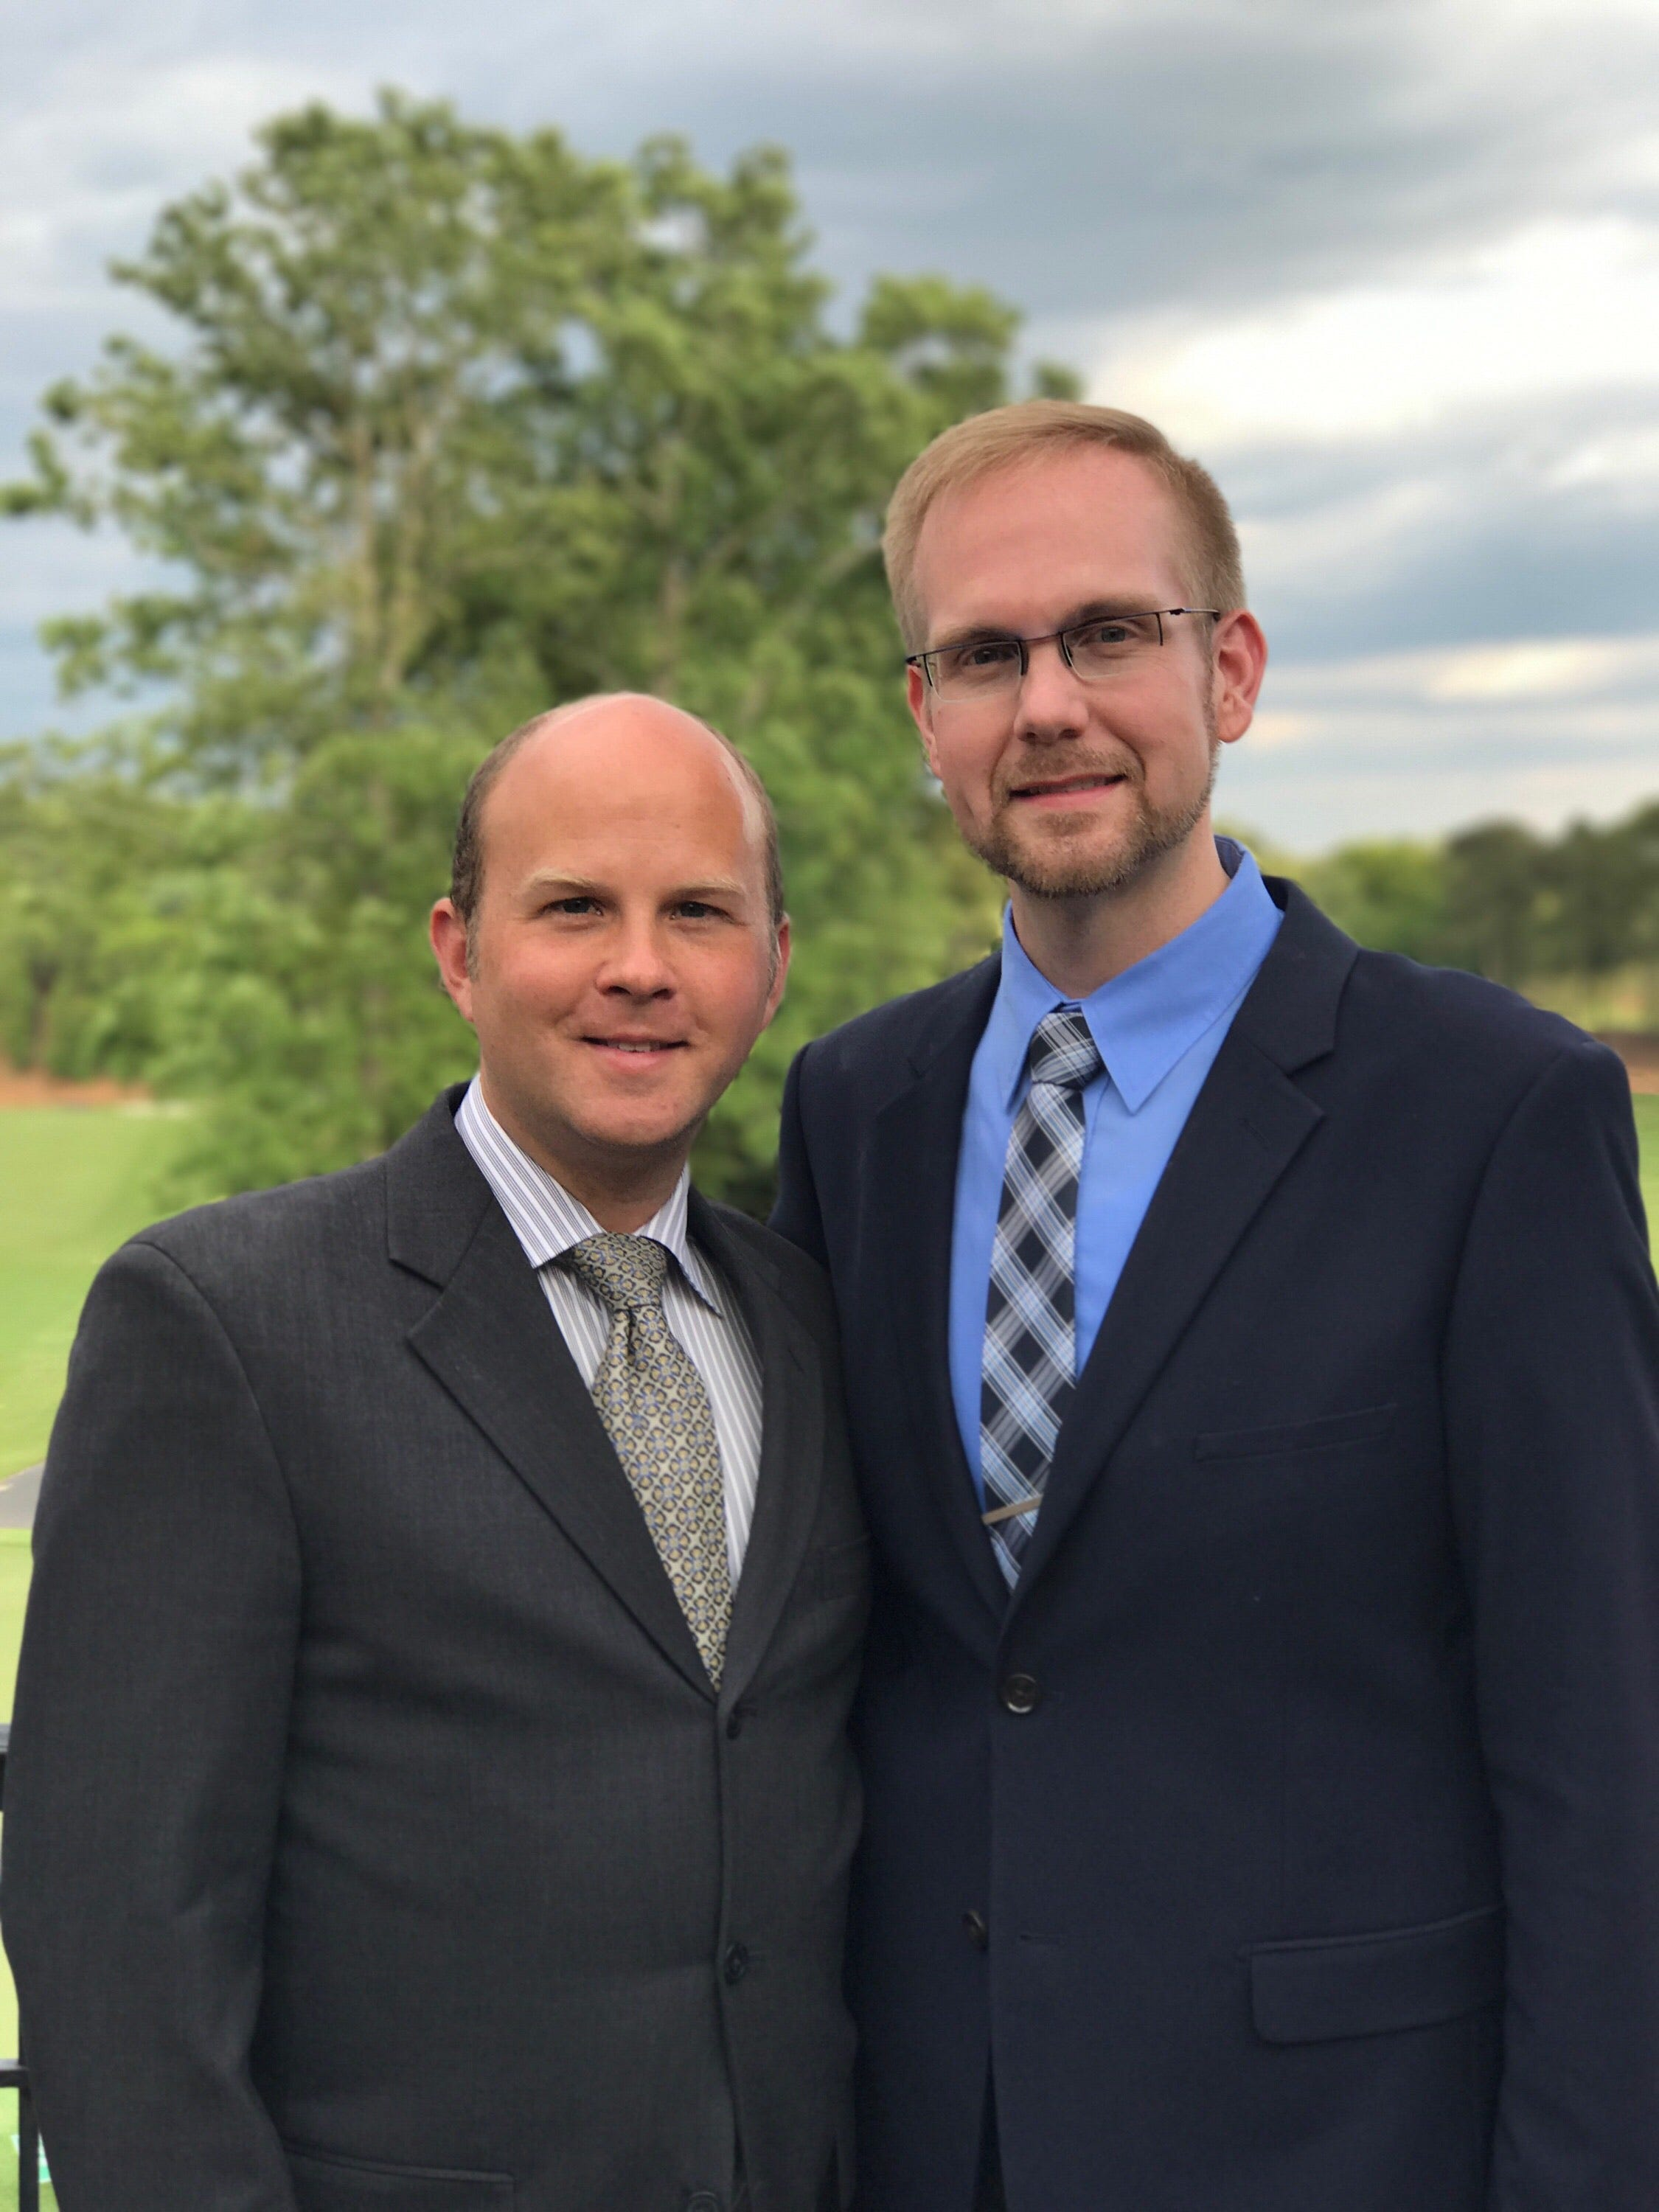 US Department of Justice supports Indianapolis Archdiocese in firing of gay teacher